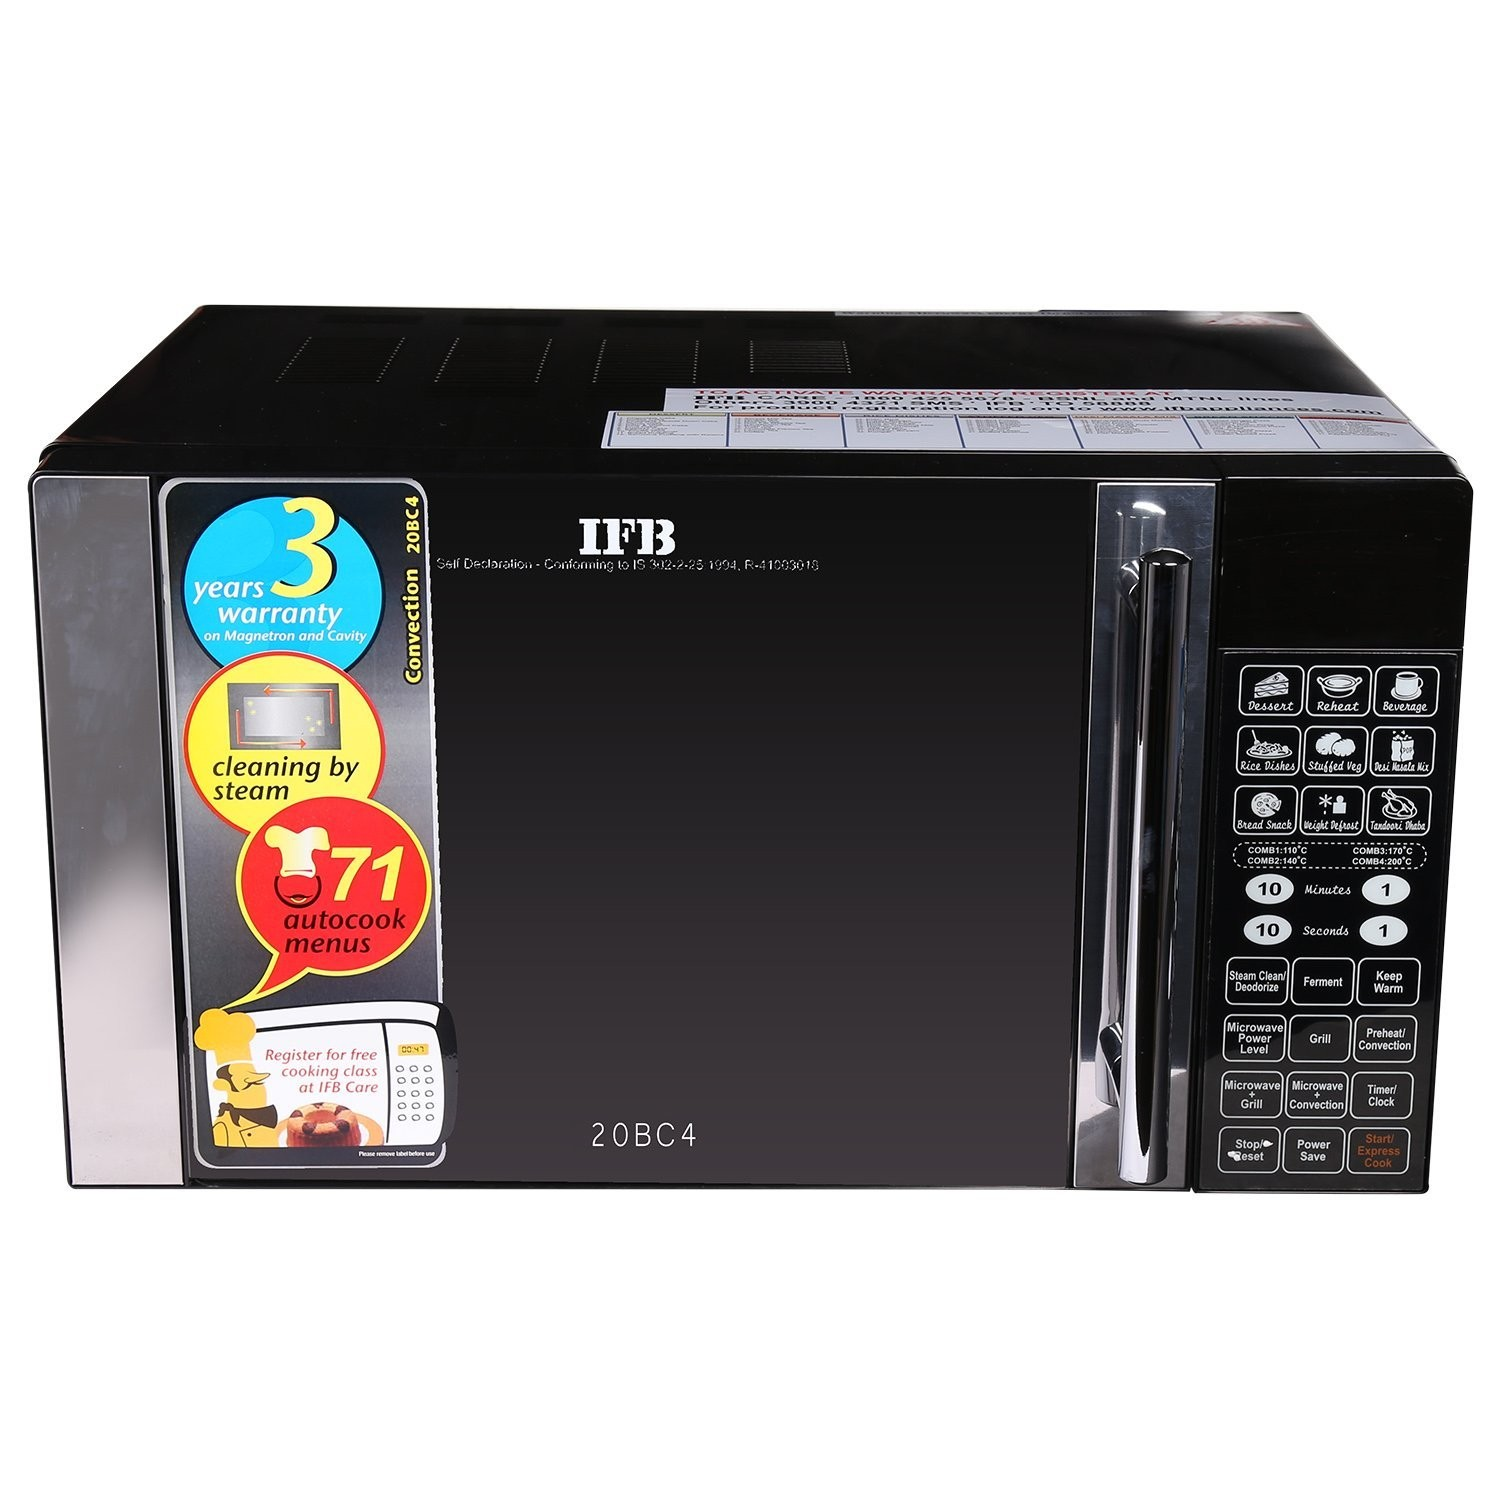 IFB Microwave Oven 20BC4